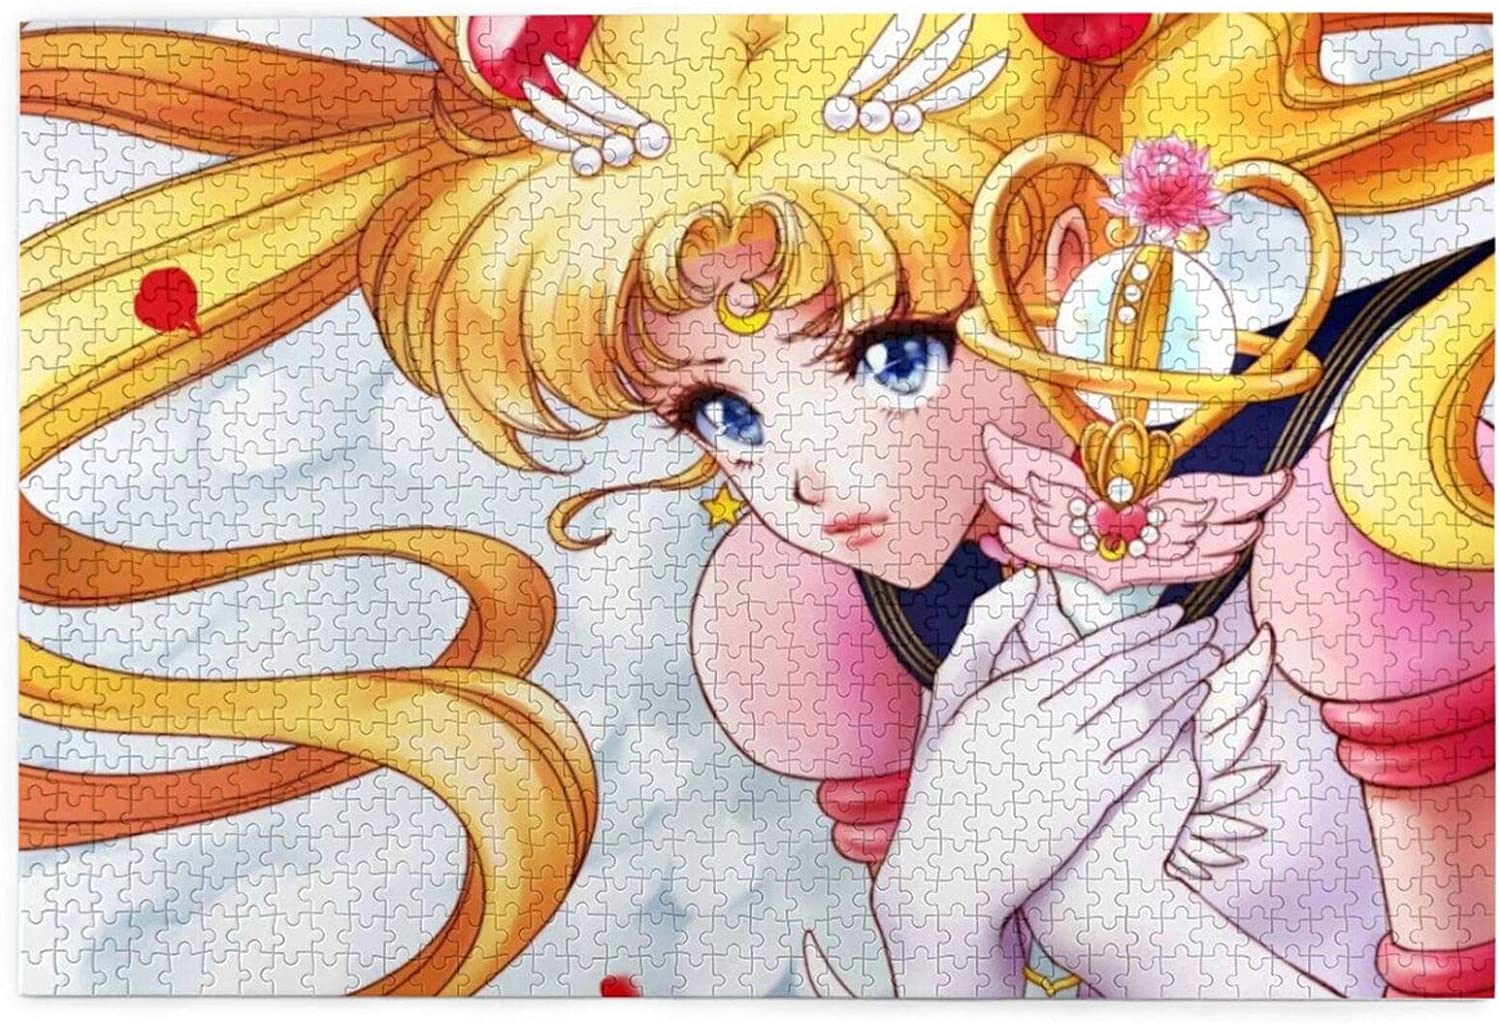 IGBSGFN Sailor Moon Characters Puzzles 1000 Piece Family Party Games Jigsaw Puzzles for Fans Gift